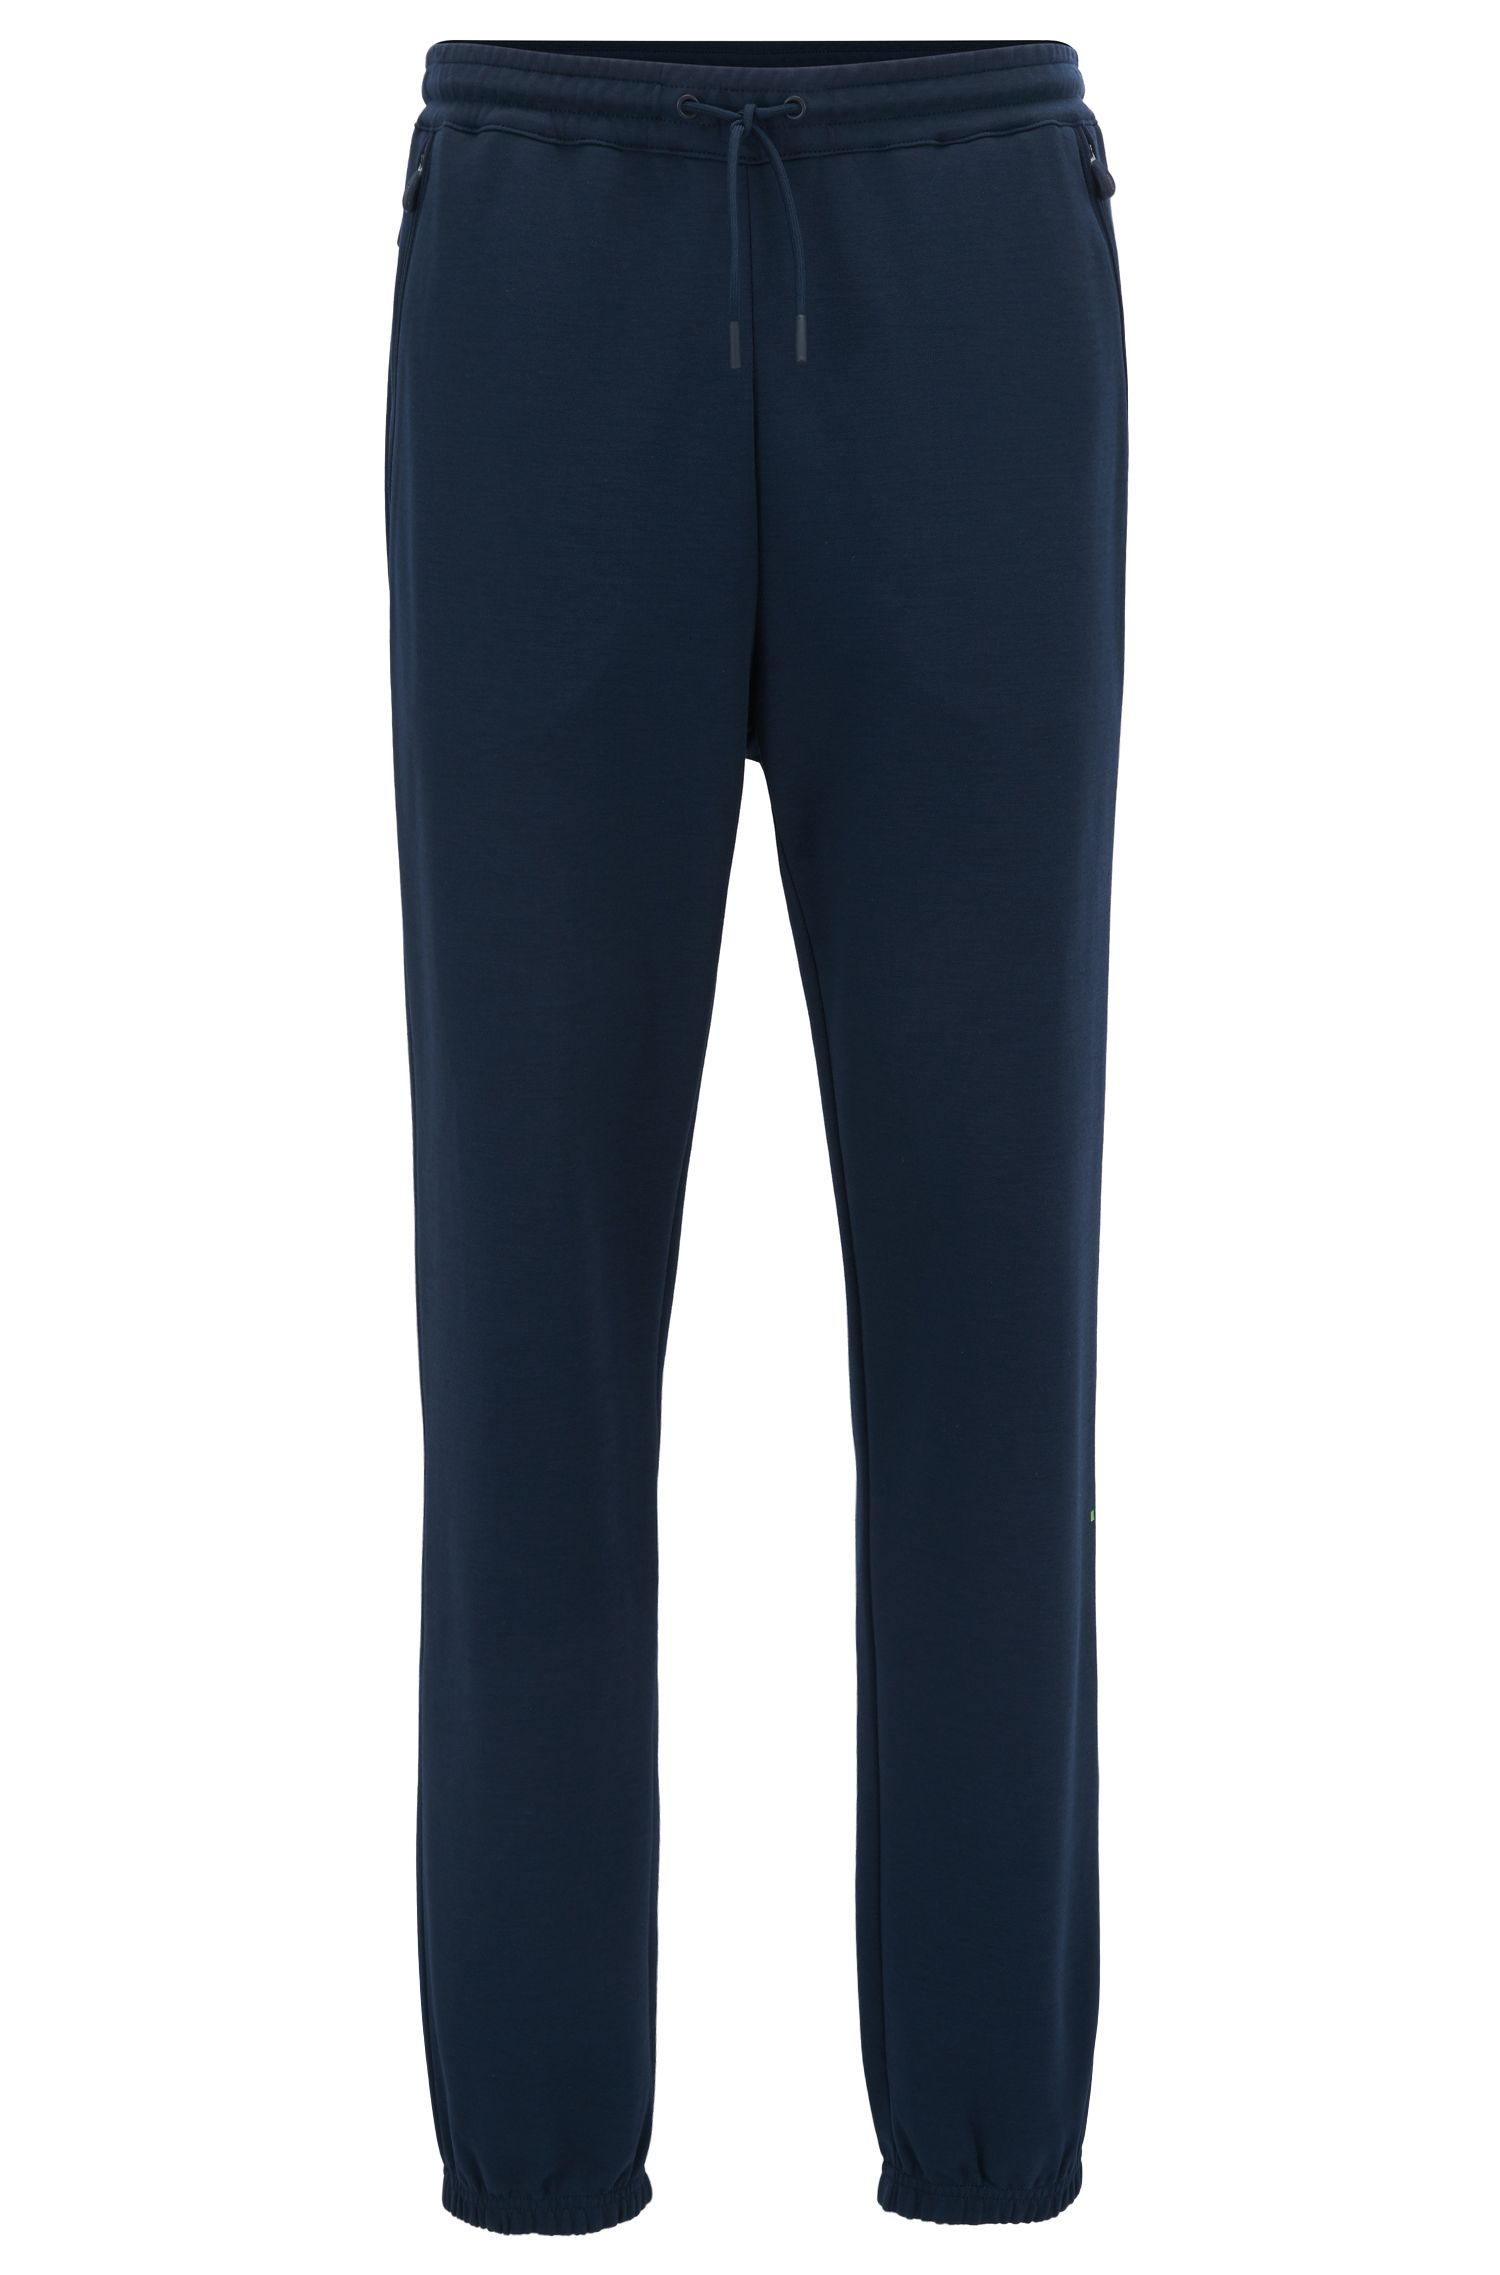 Cotton Blend Sweatpants | HL Tech, Dark Blue